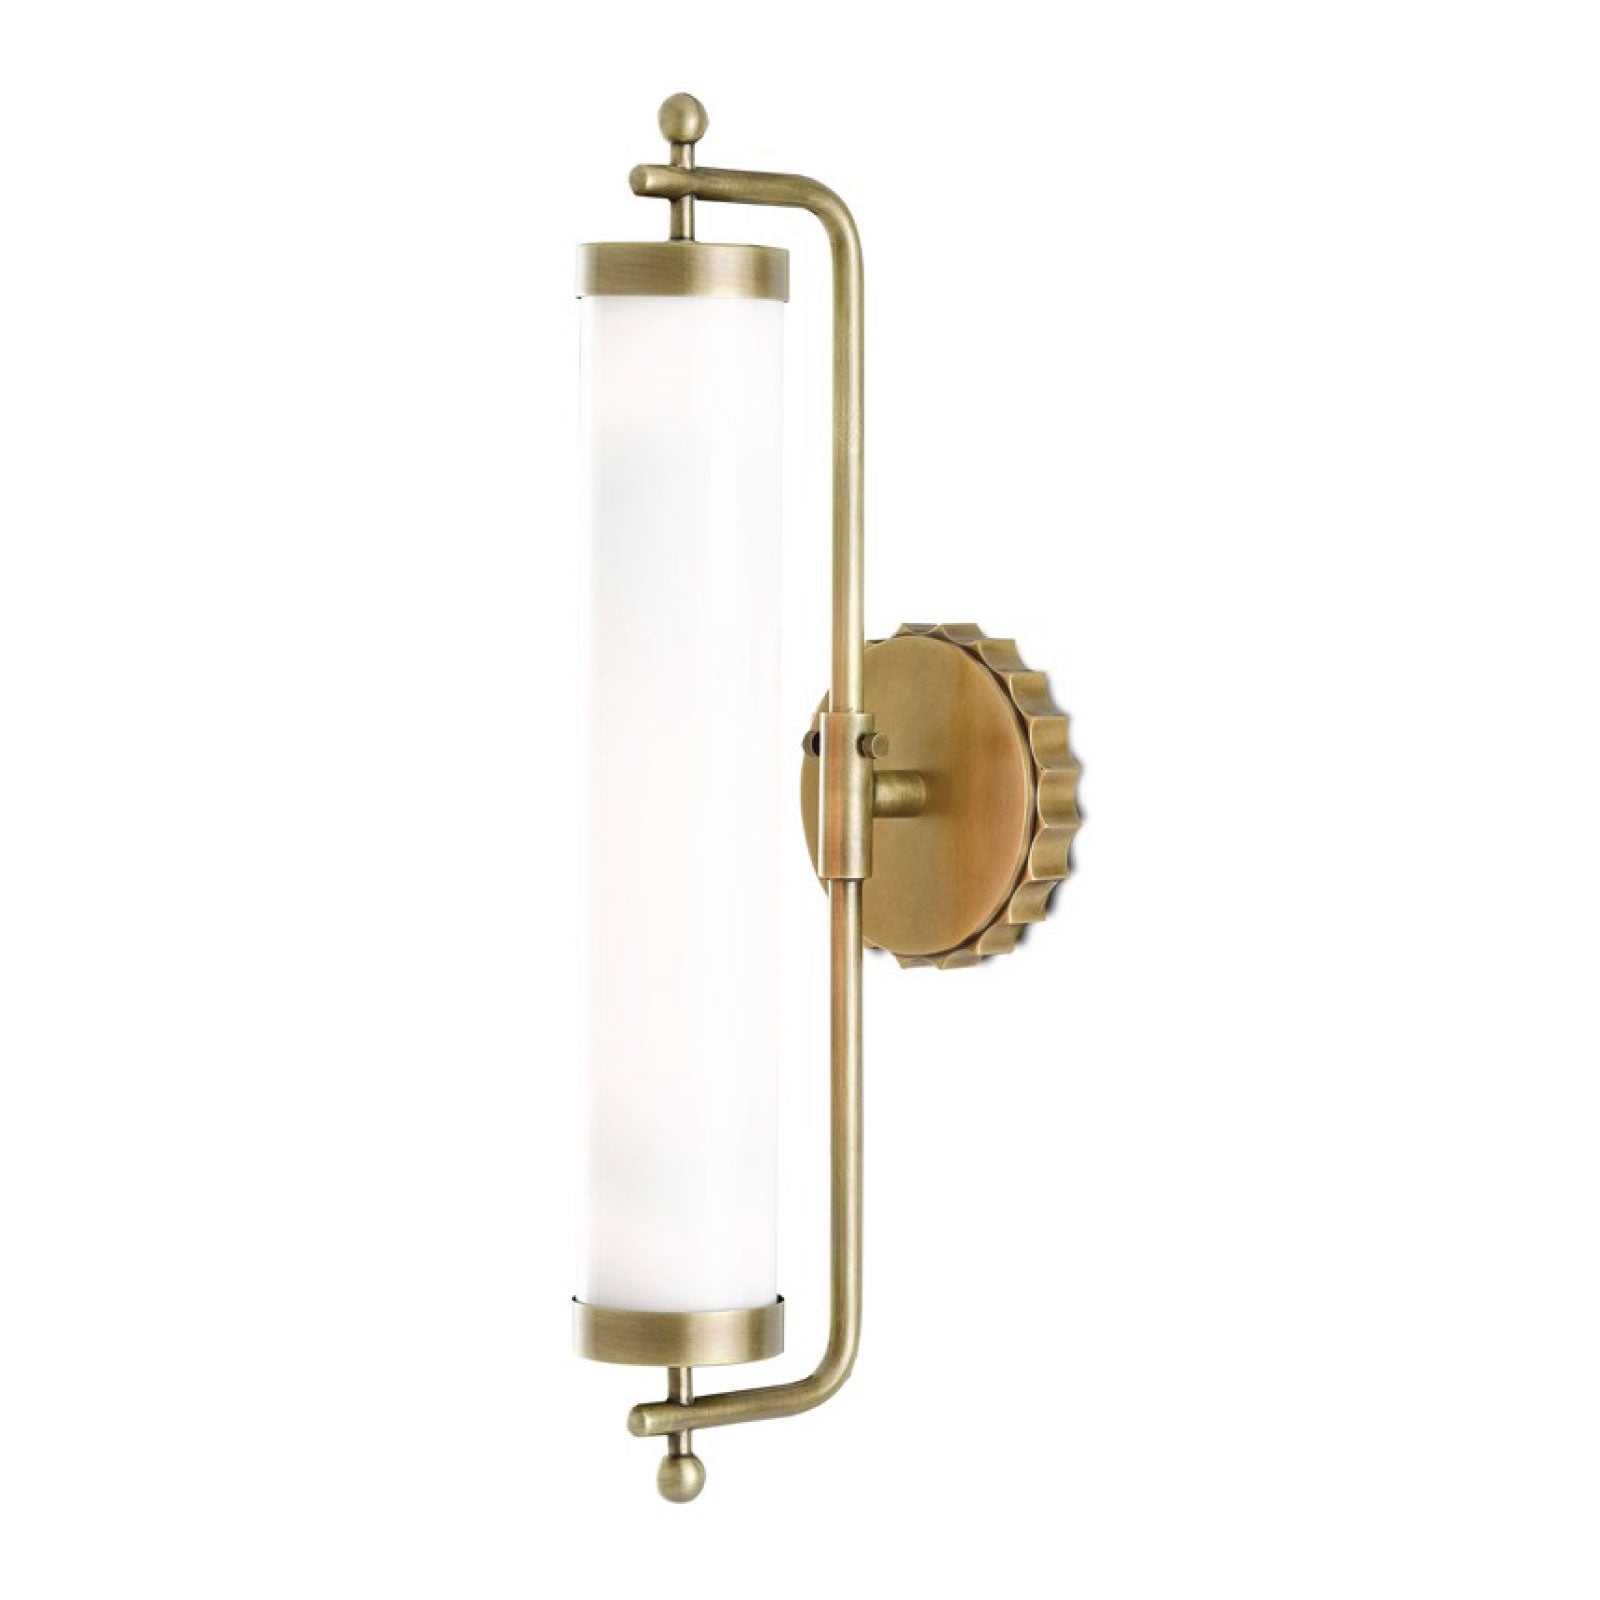 Daisy Wall Sconce in Brass